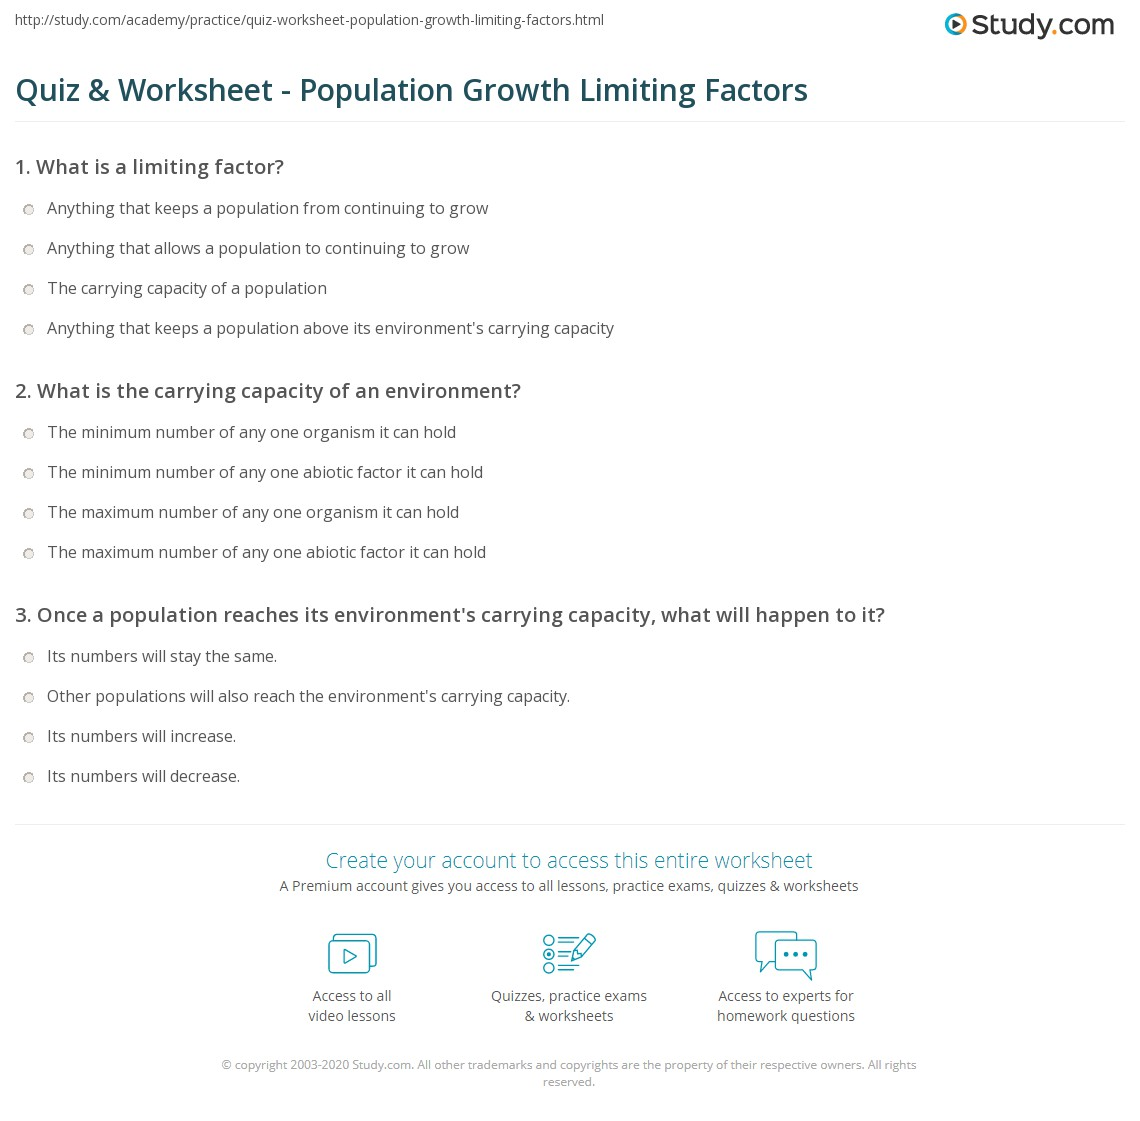 Quiz Worksheet Population Growth Limiting Factors Study